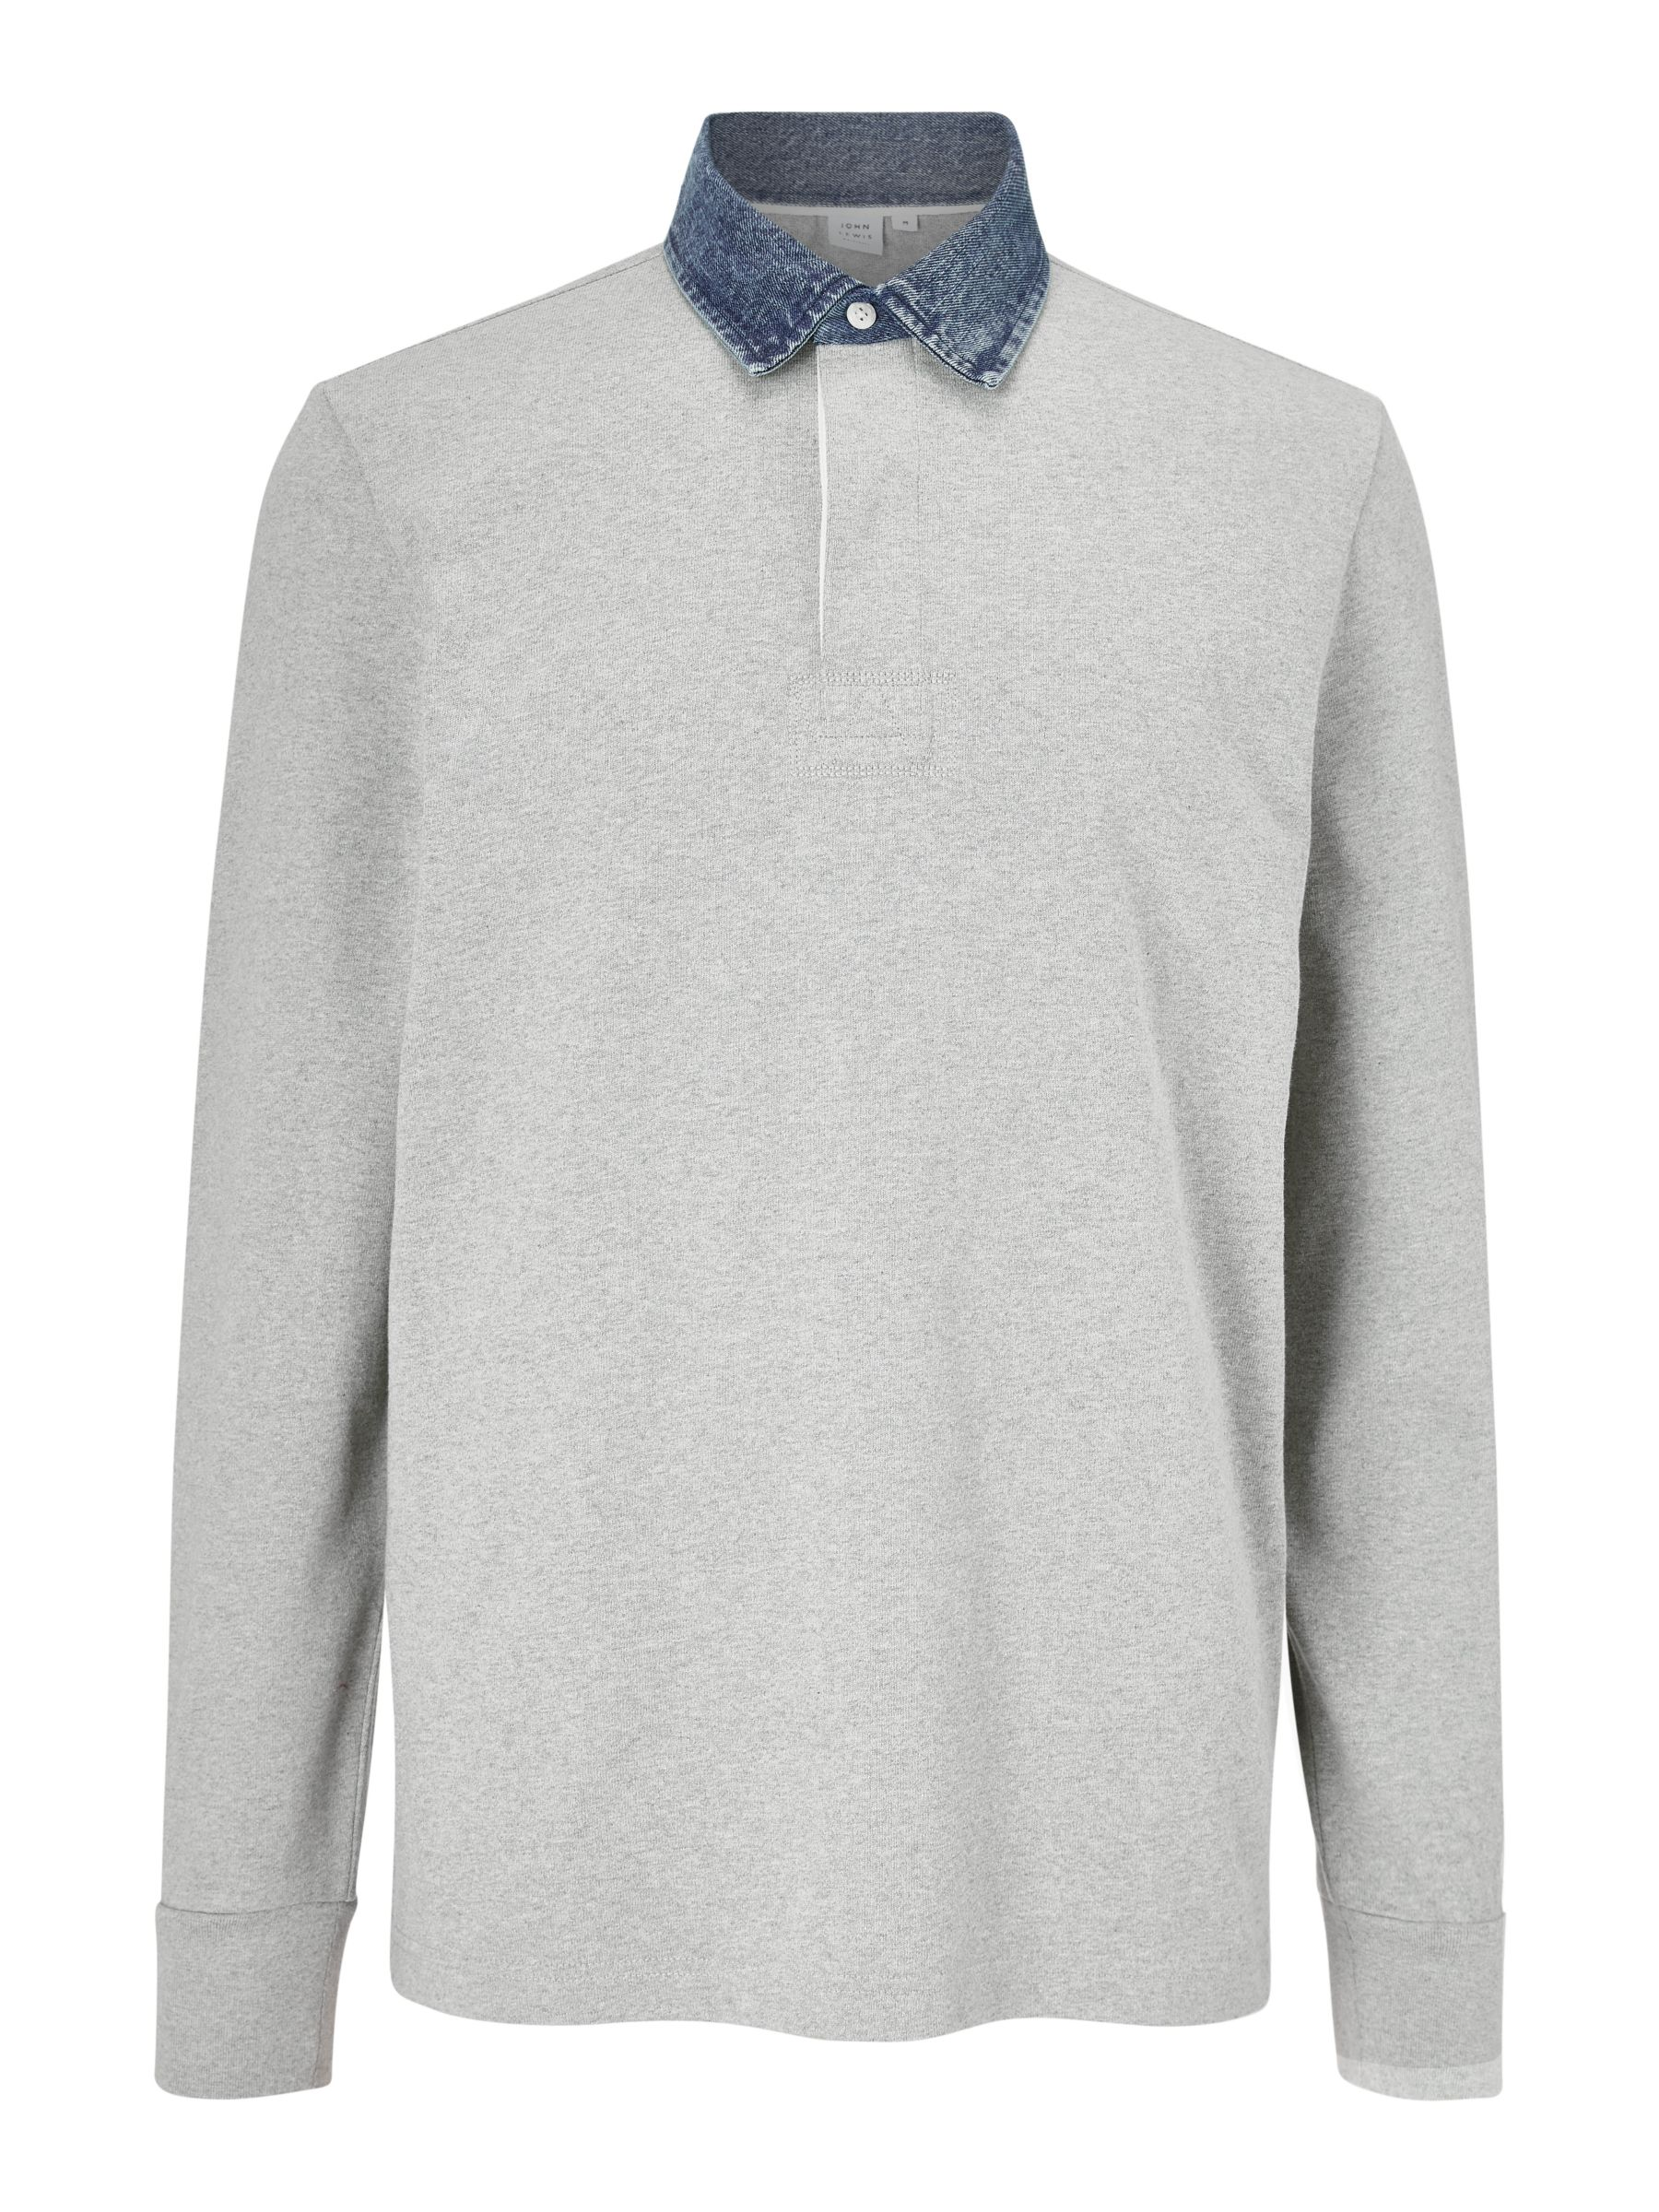 Buy John Lewis & Partners Merritt Denim Collar Rugby Top, Grey Melange, S Online at johnlewis.com